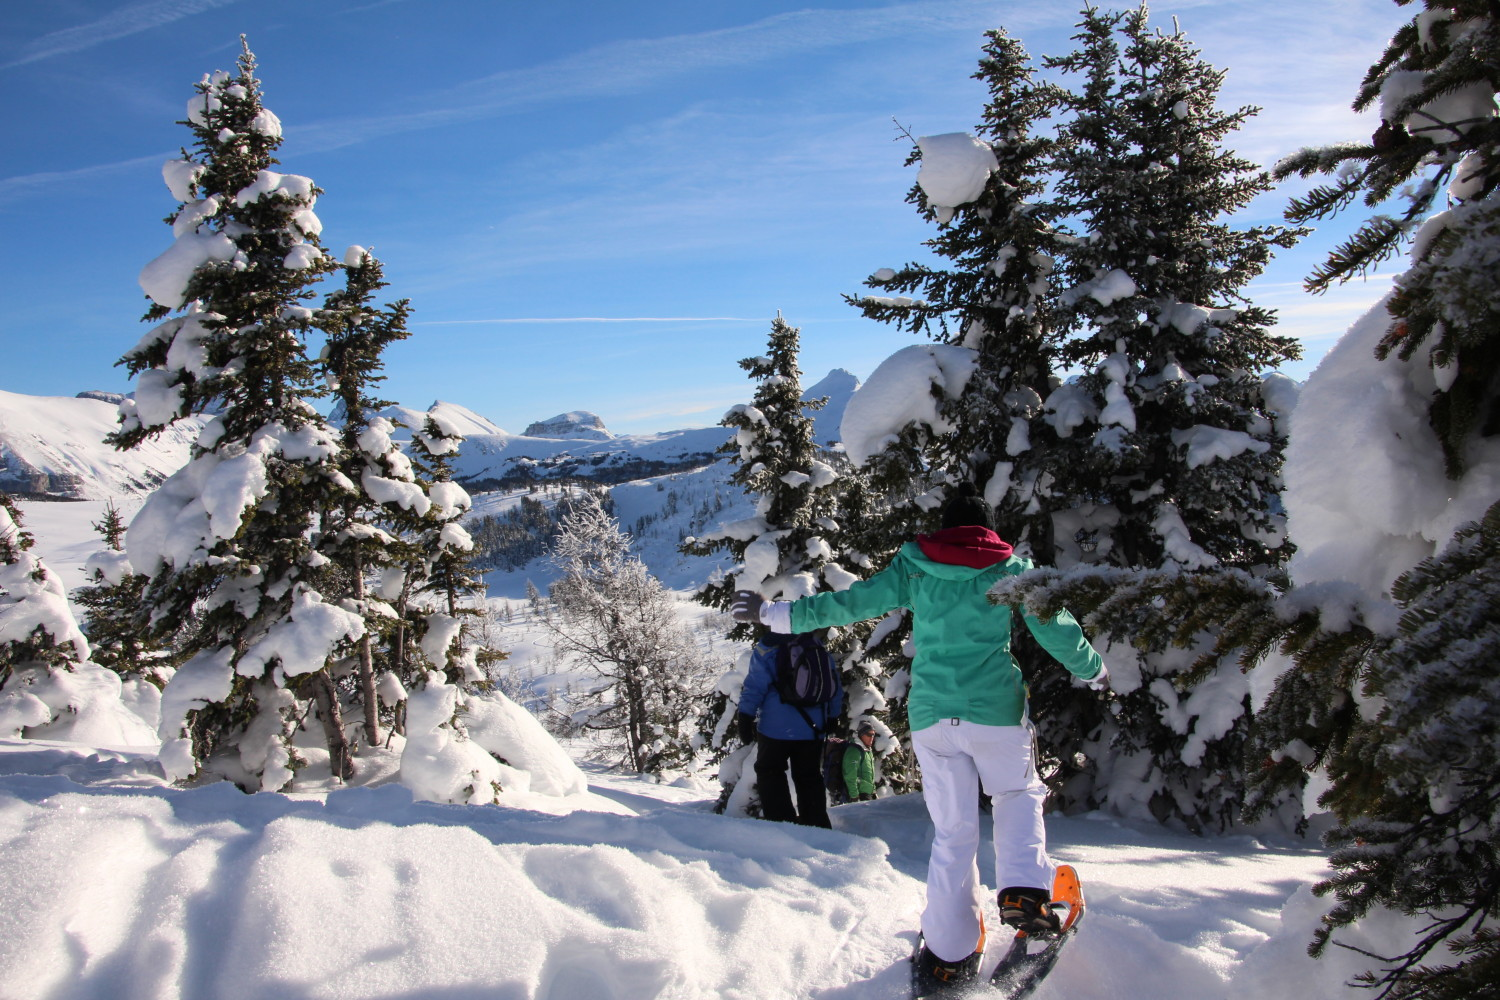 snowshoeing in Canadian Rockies with blue sky